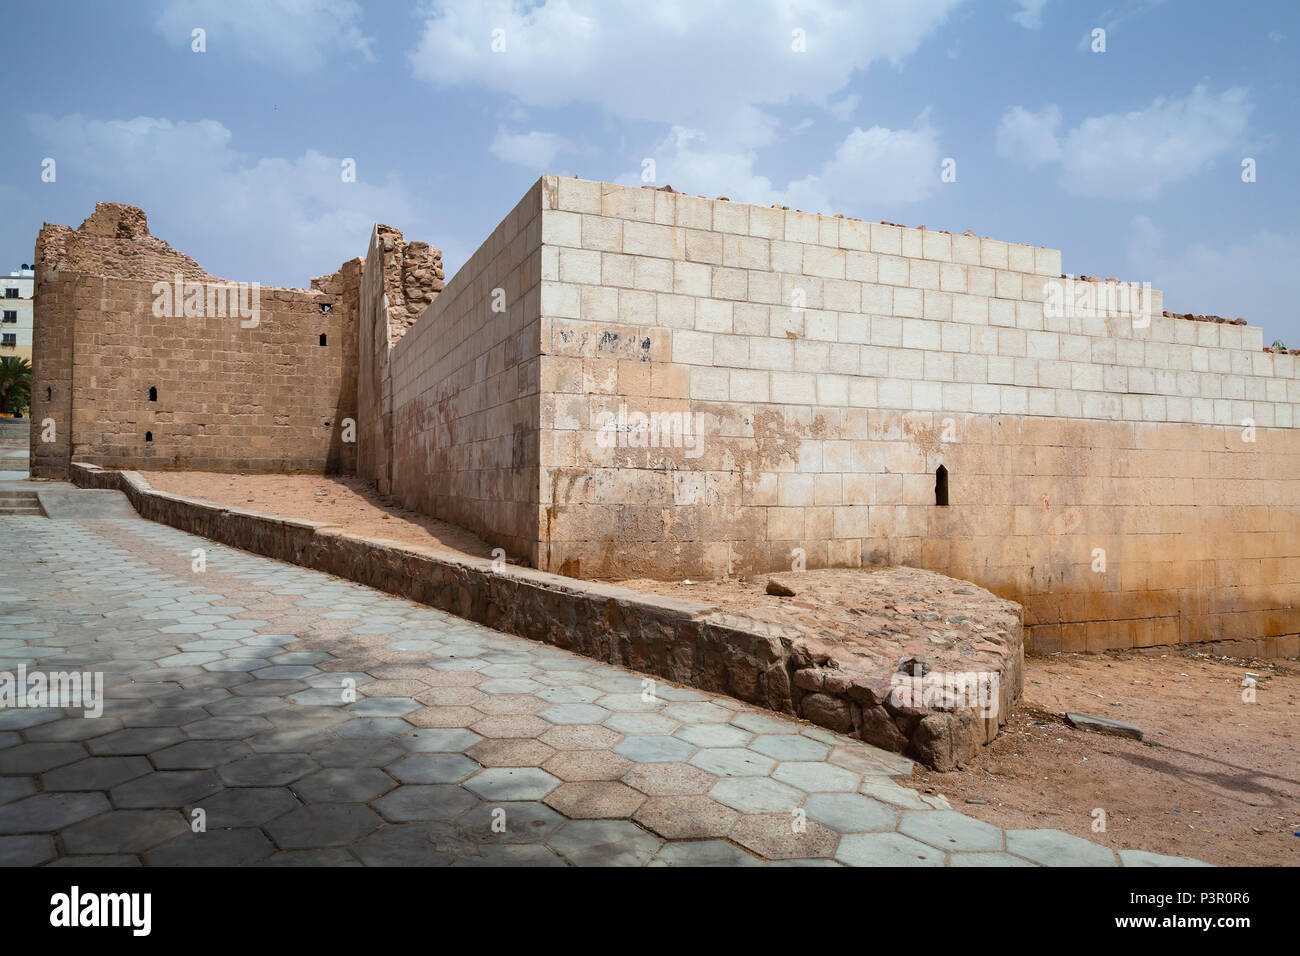 Ruined Aqaba Fortress, Mamluk Castle or Aqaba Fort located in Aqaba city, Jordan - Stock Image